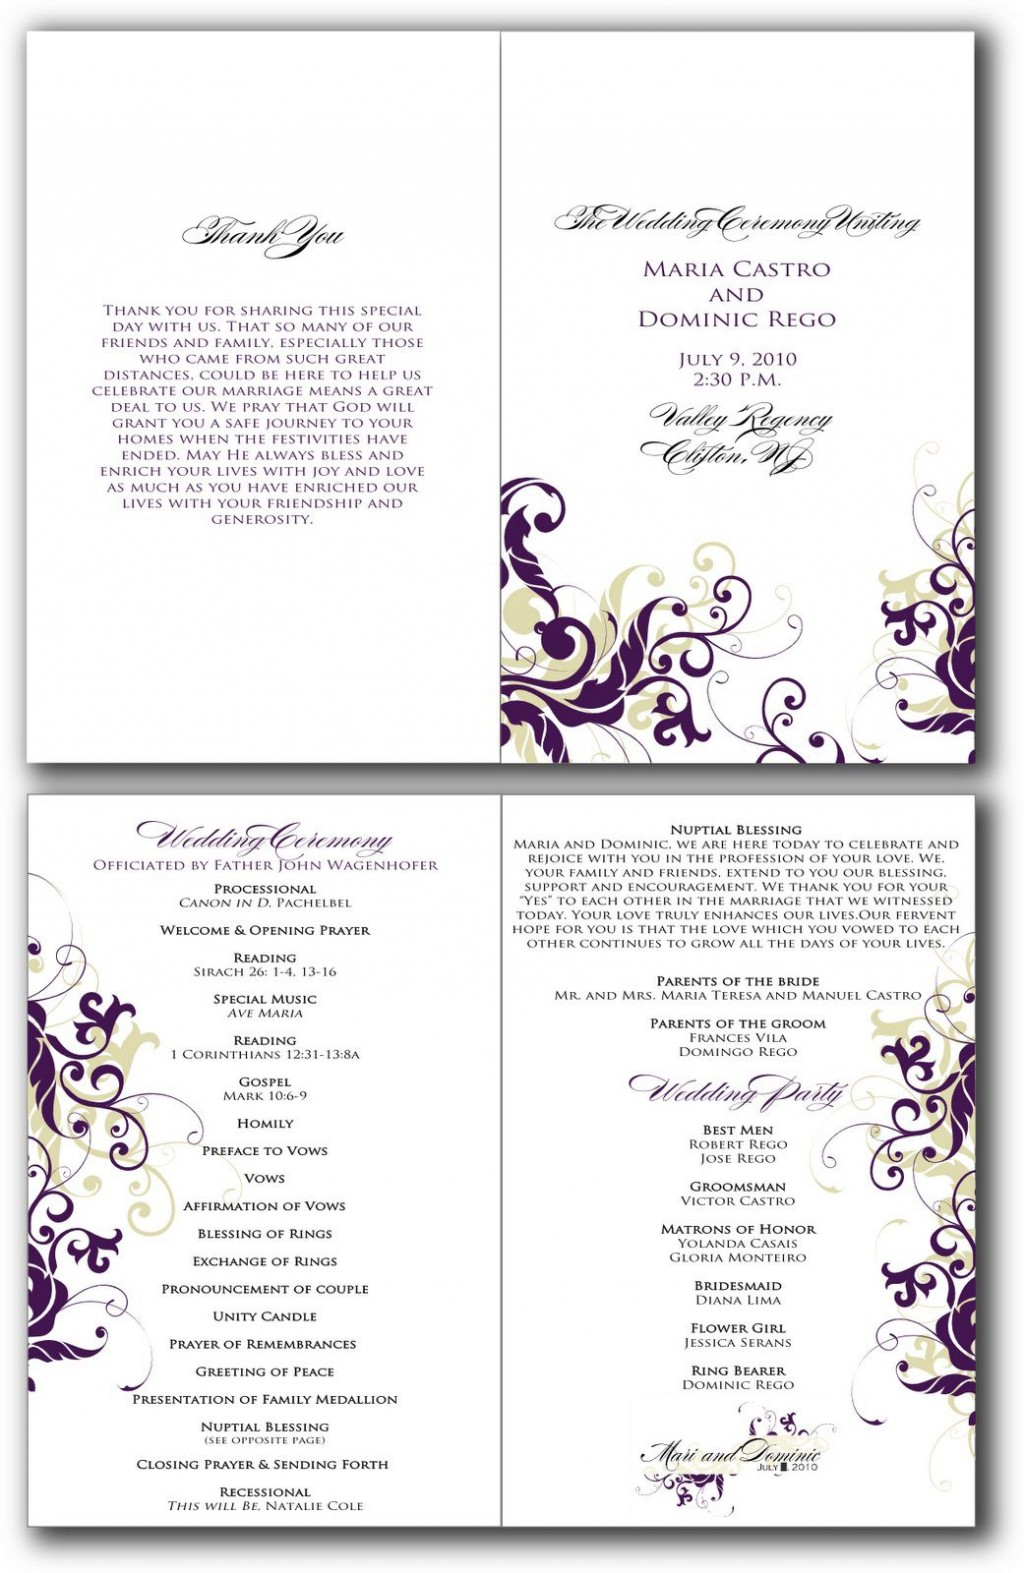 003 Surprising Free Downloadable Wedding Program Template Sample  Templates That Can Be Printed Printable Fall ReceptionLarge